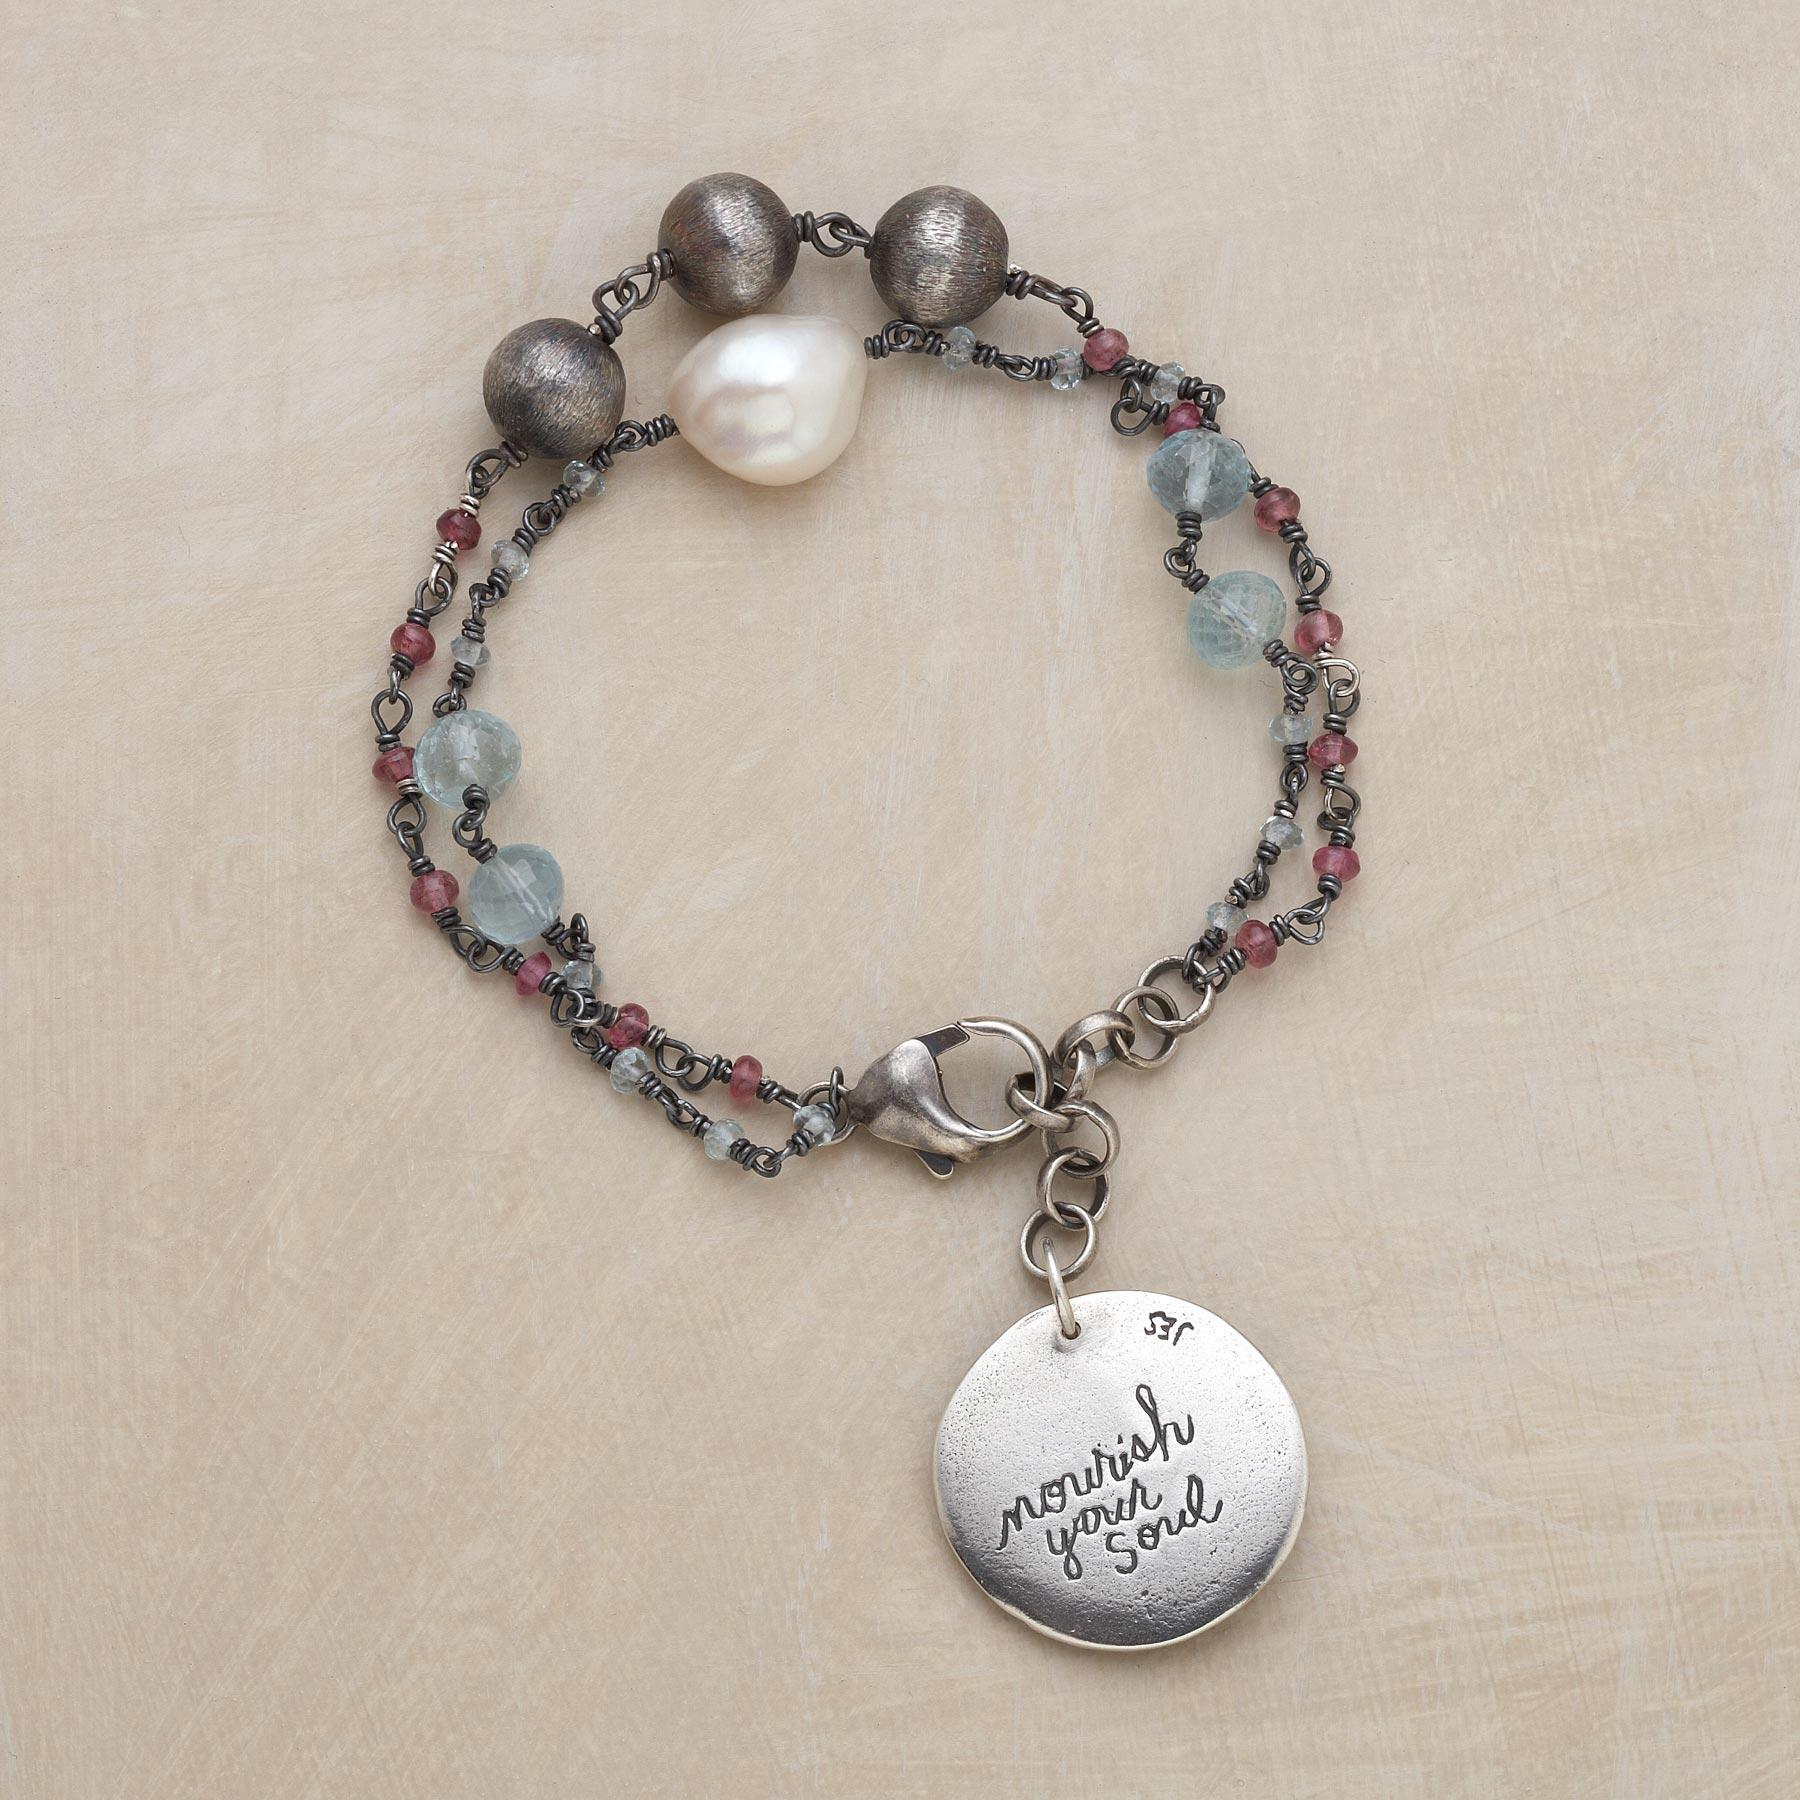 NOURISH YOUR SOUL BRACELET: View 2